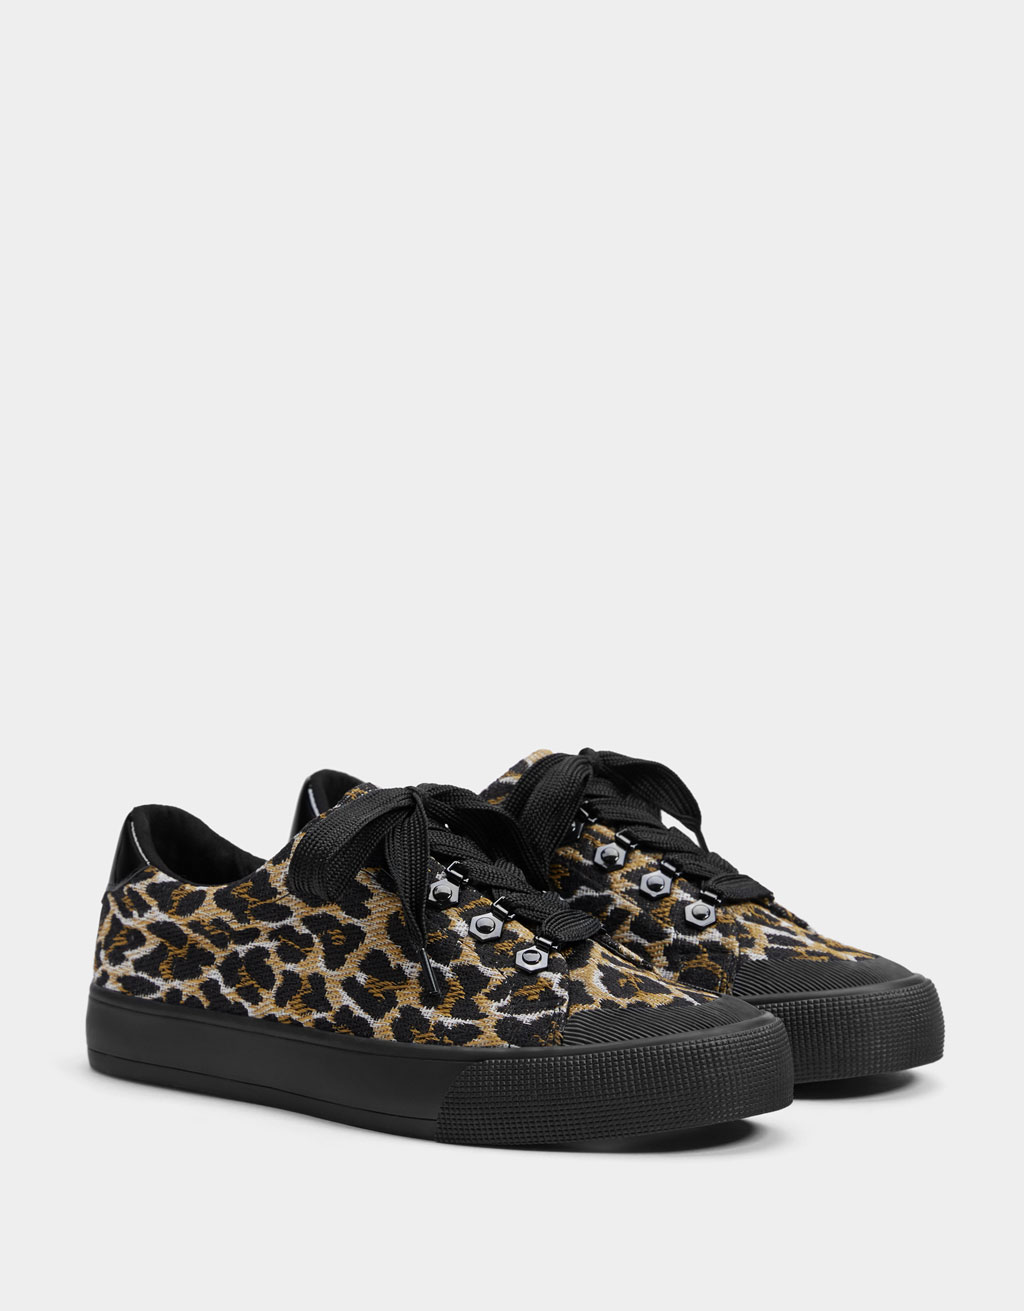 Zapatilak animal print estanpatuarekin